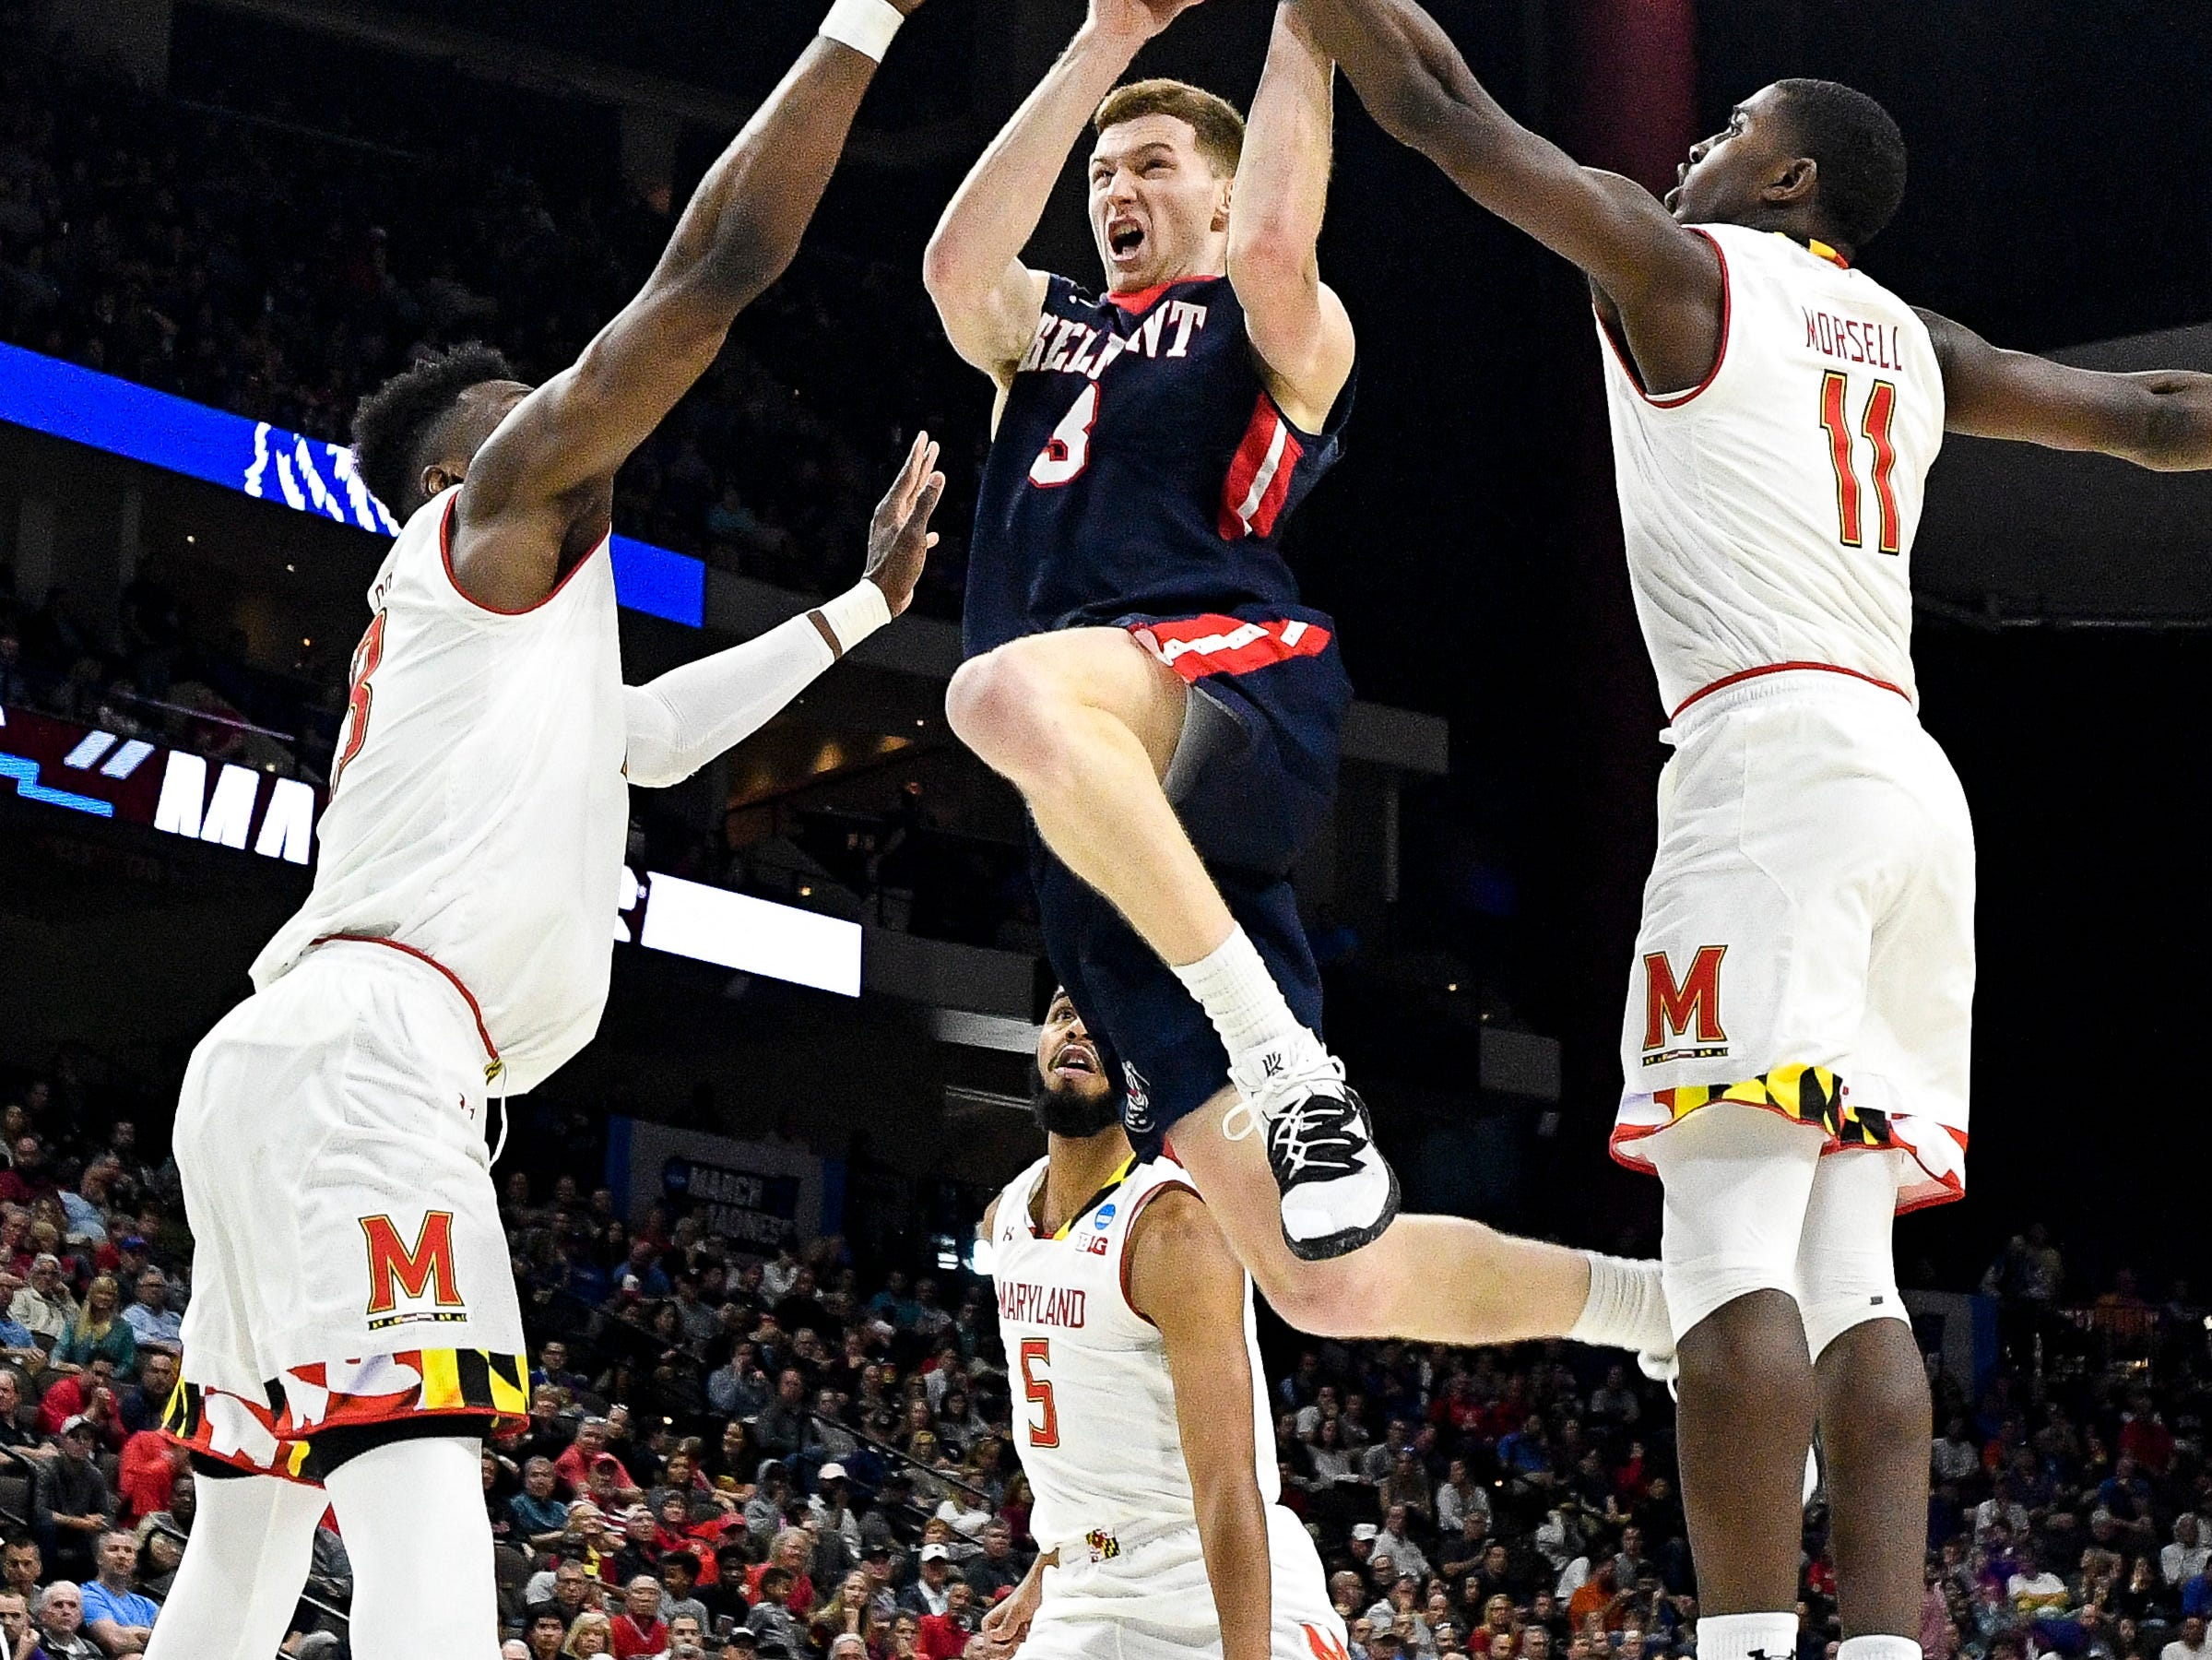 Belmont guard/forward Dylan Windler (3) is fouled by Maryland guard Darryl Morsell (11) during the second half of the first-round NCAA college basketball tournament game at VyStar Veterans Memorial Arena in Jacksonville, Fla., Thursday, March 21, 2019.